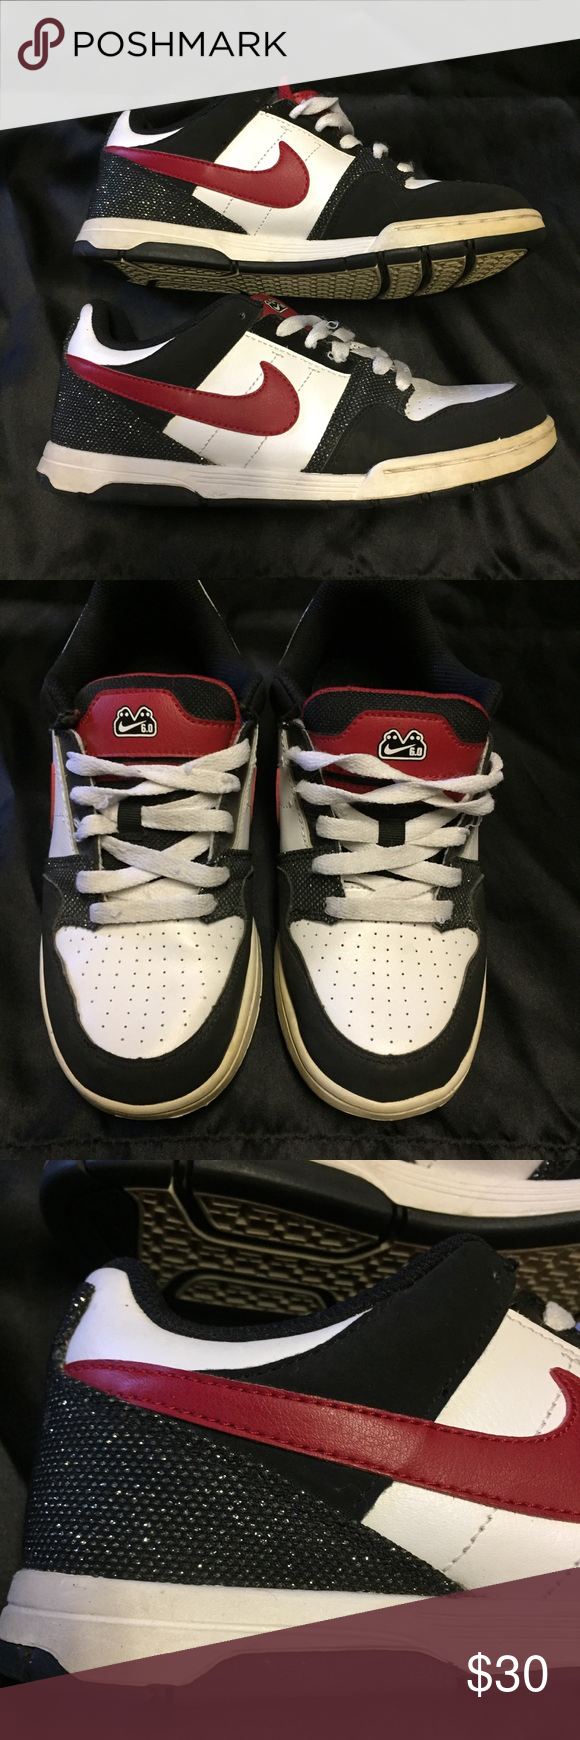 6d02522683aae Nike 6.0 Morgan JR shoes Super cute Nike shoes size 5.5Y in excellent  condition. The laces have a couple snags but not bad. The backs are sparkly.